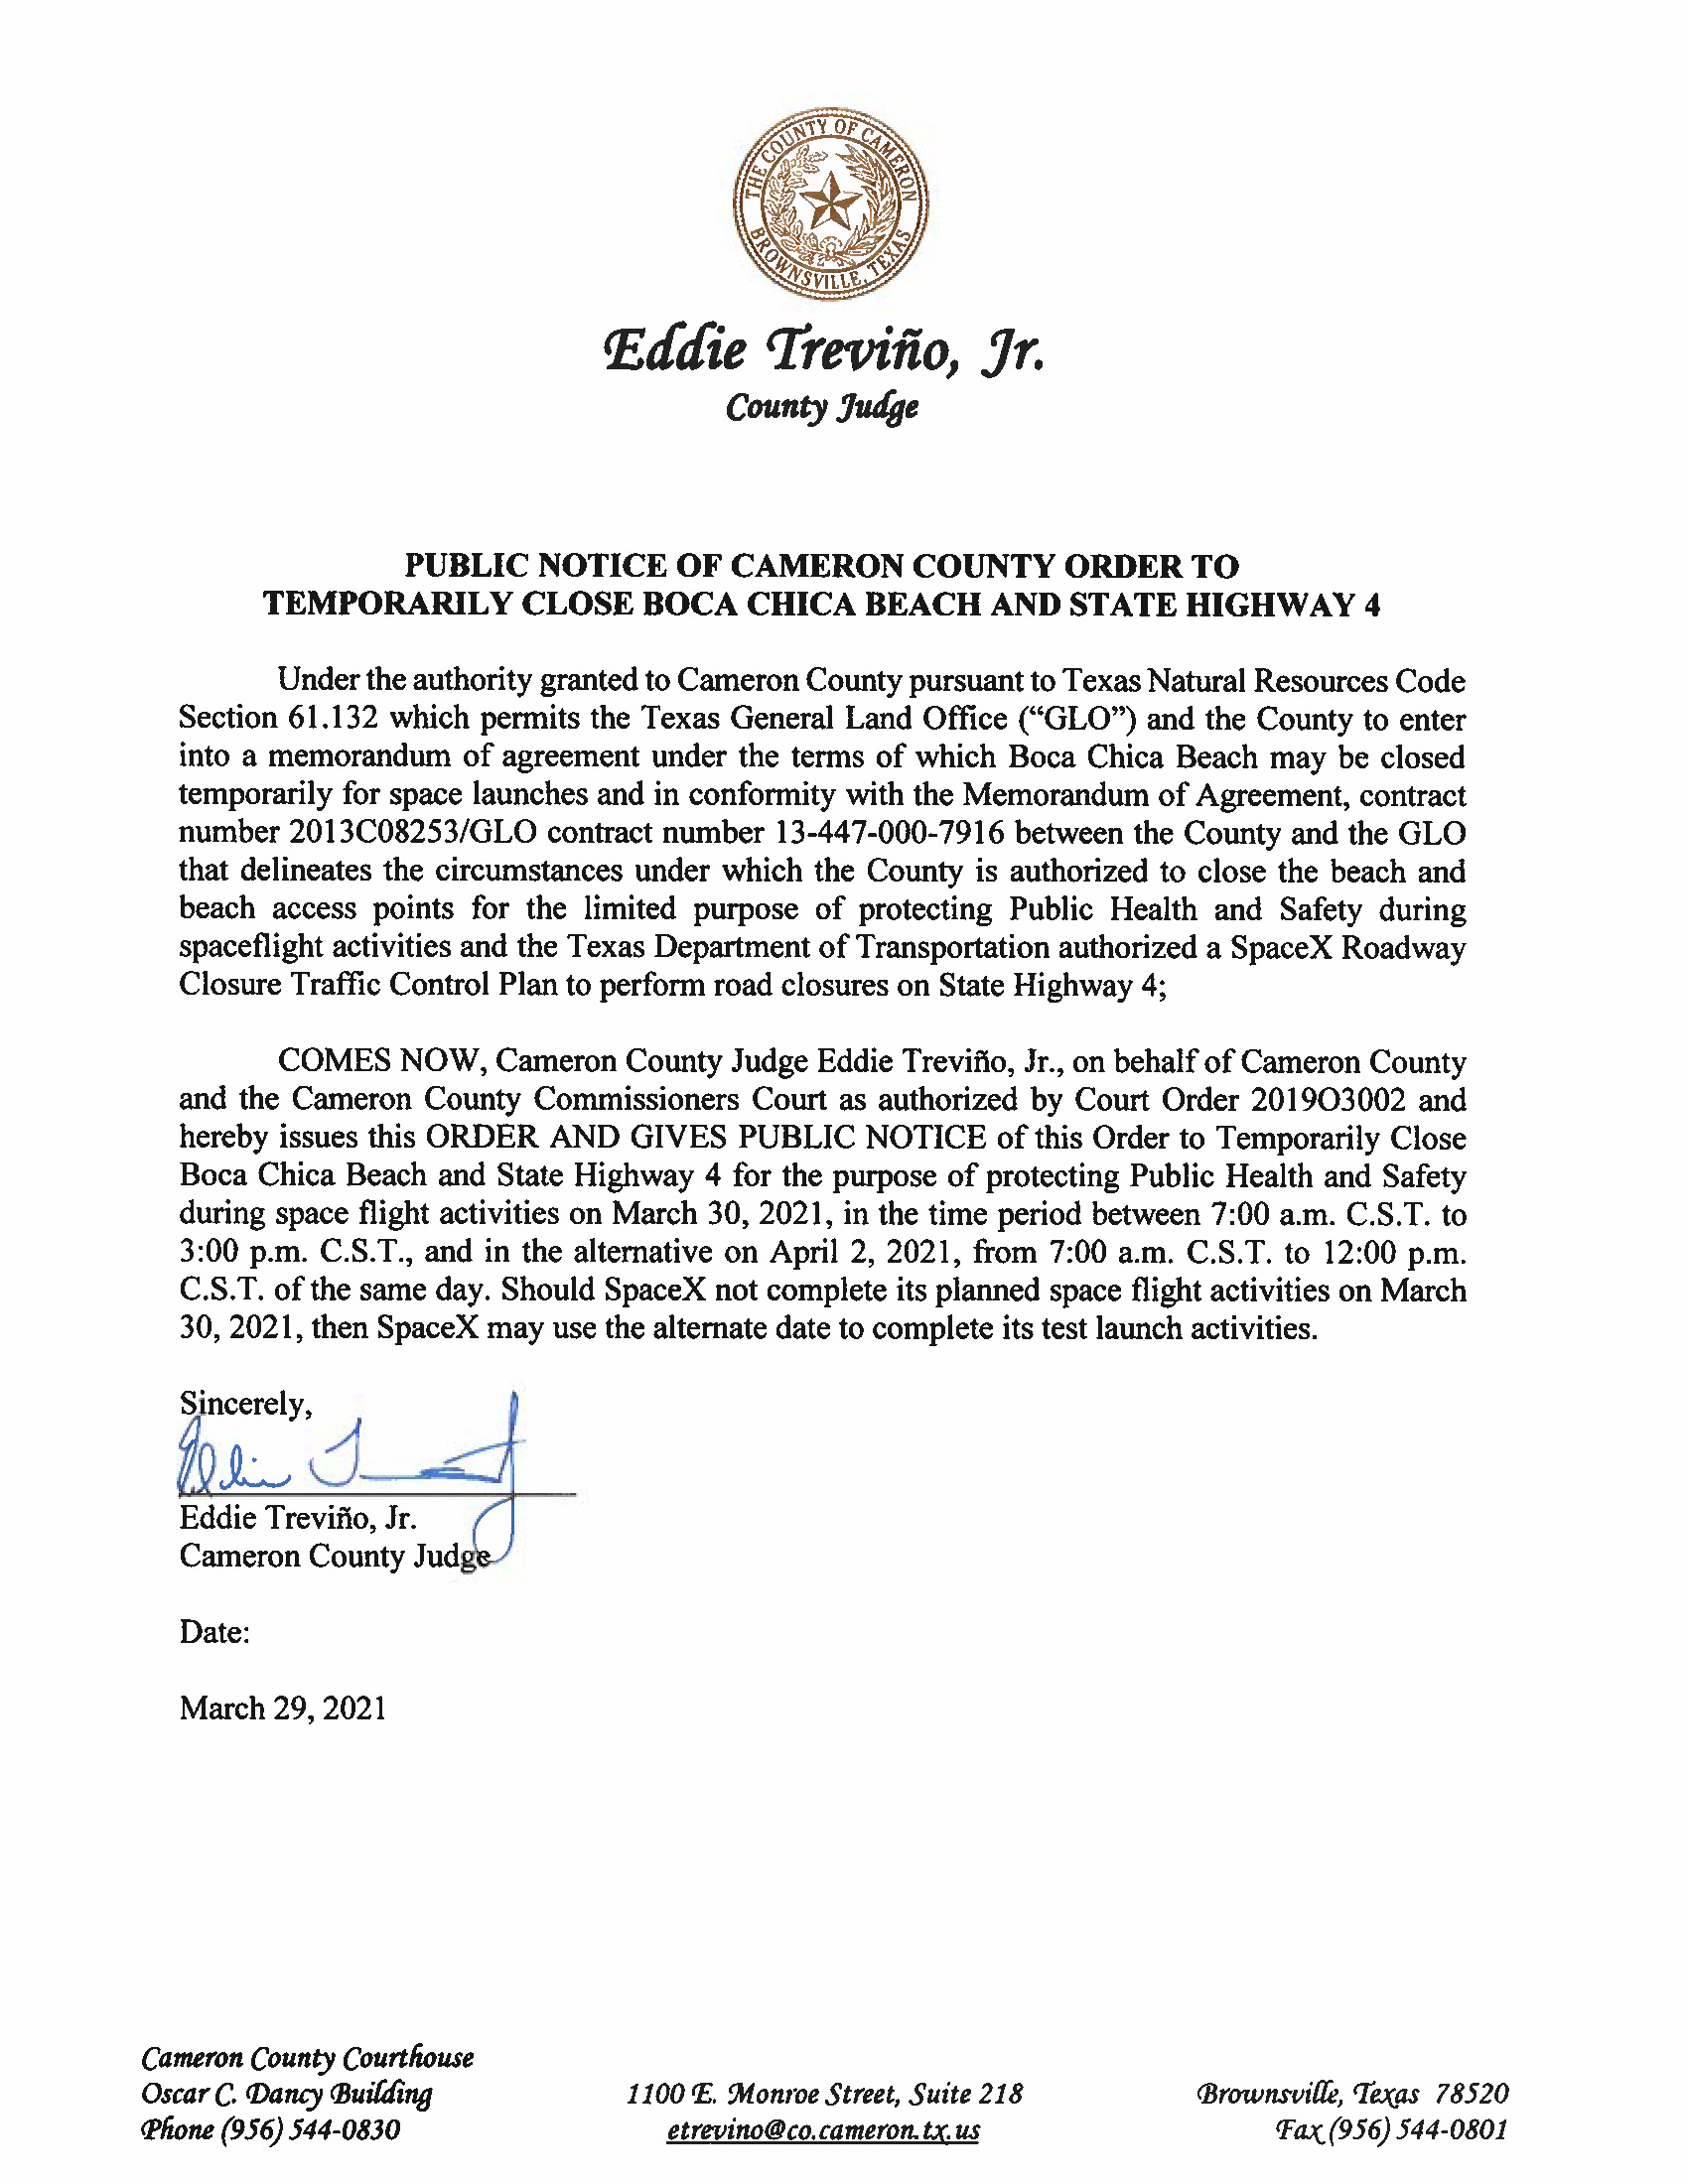 PUBLIC NOTICE OF CAMERON COUNTY ORDER TO TEMP. BEACH CLOSURE AND HWY.03.30.2021 And 04.02.2021